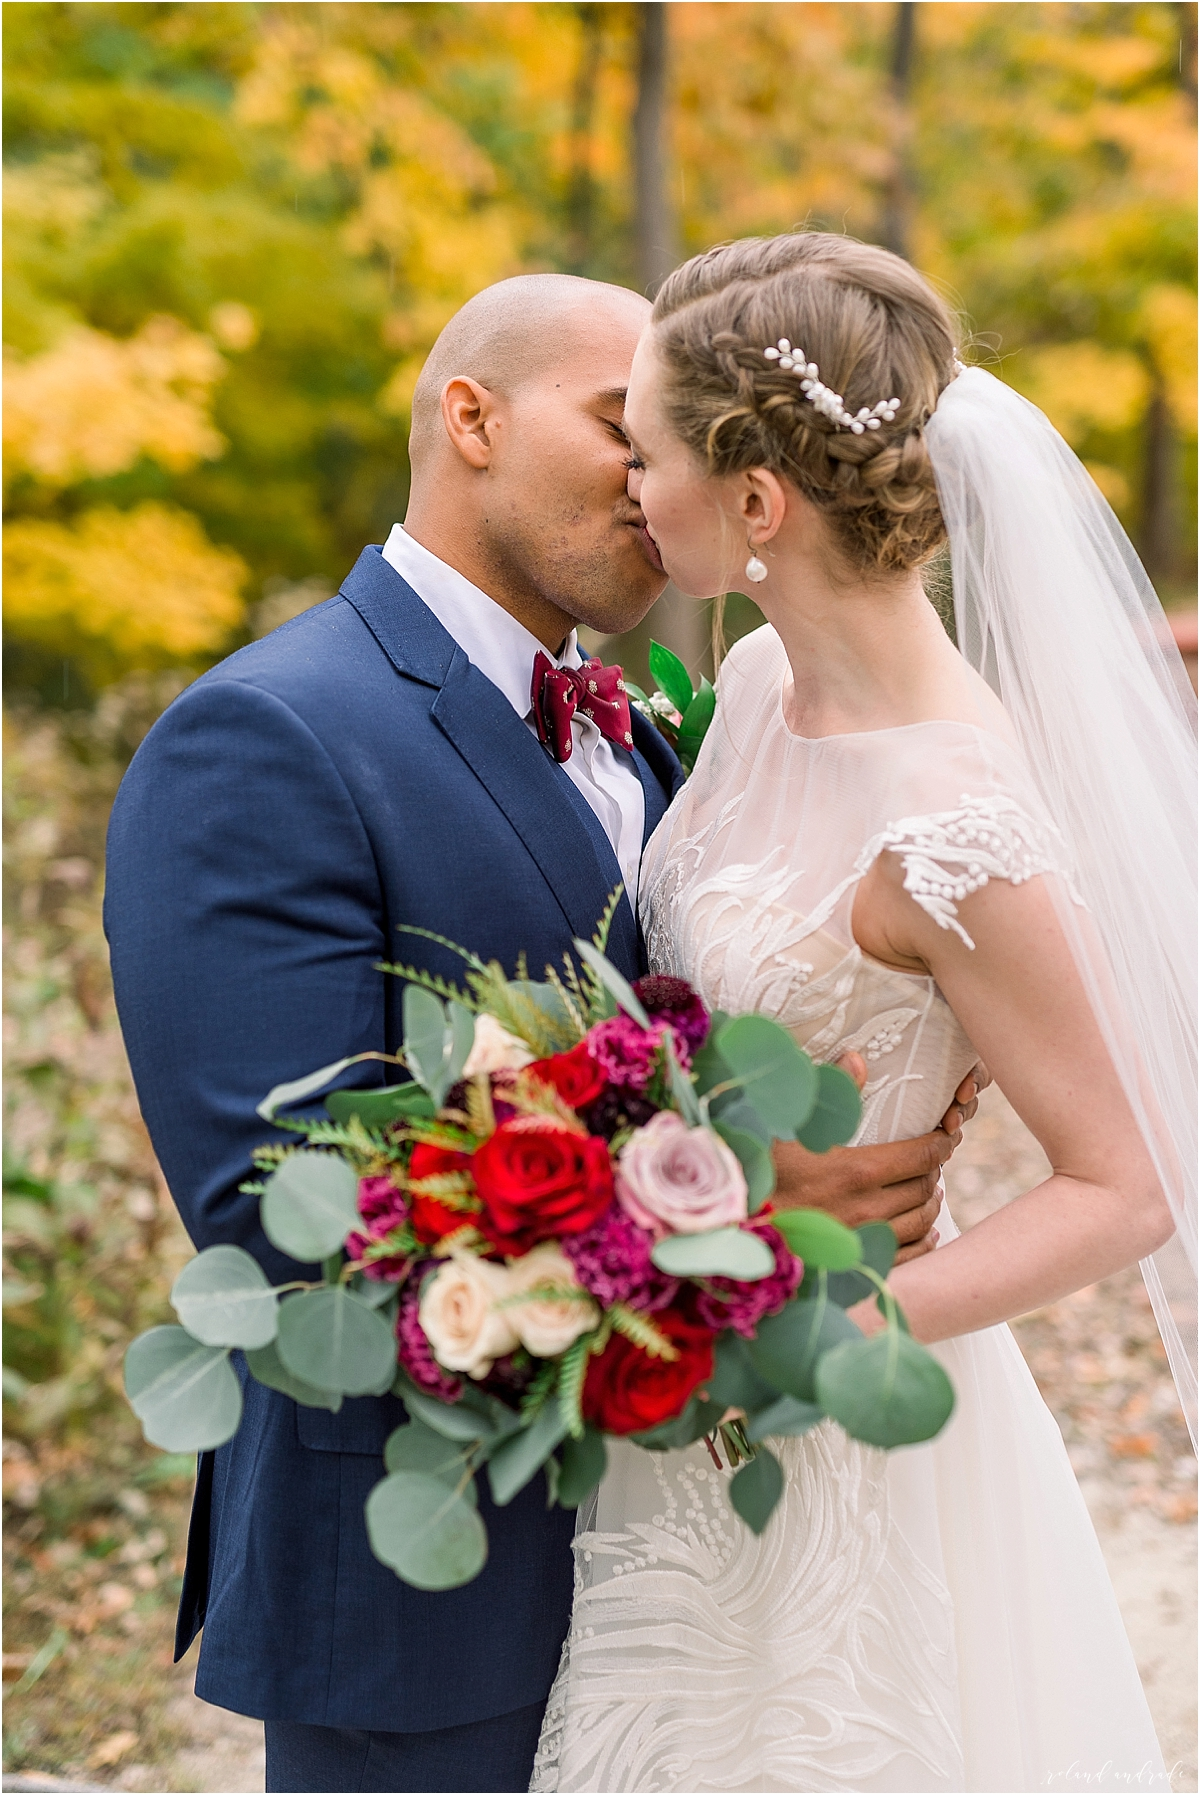 Naperville Country Club Wedding, Chicago Wedding Photographer, Naperville Wedding Photographer, Best Photographer In Aurora, Best Photographer In Chicago_0047.jpg